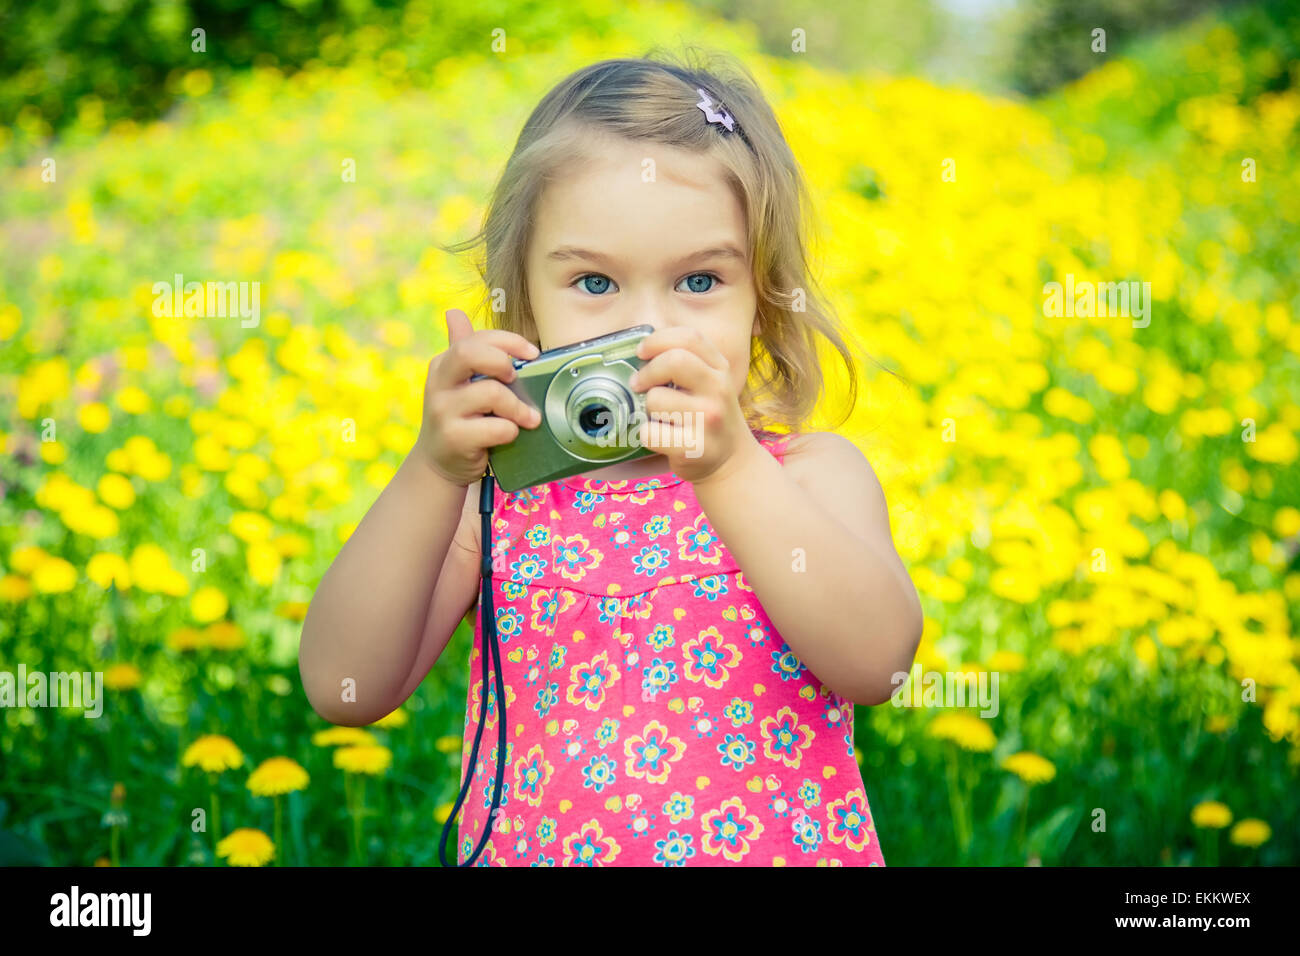 Little girl taking pictures on a meadow - Stock Image